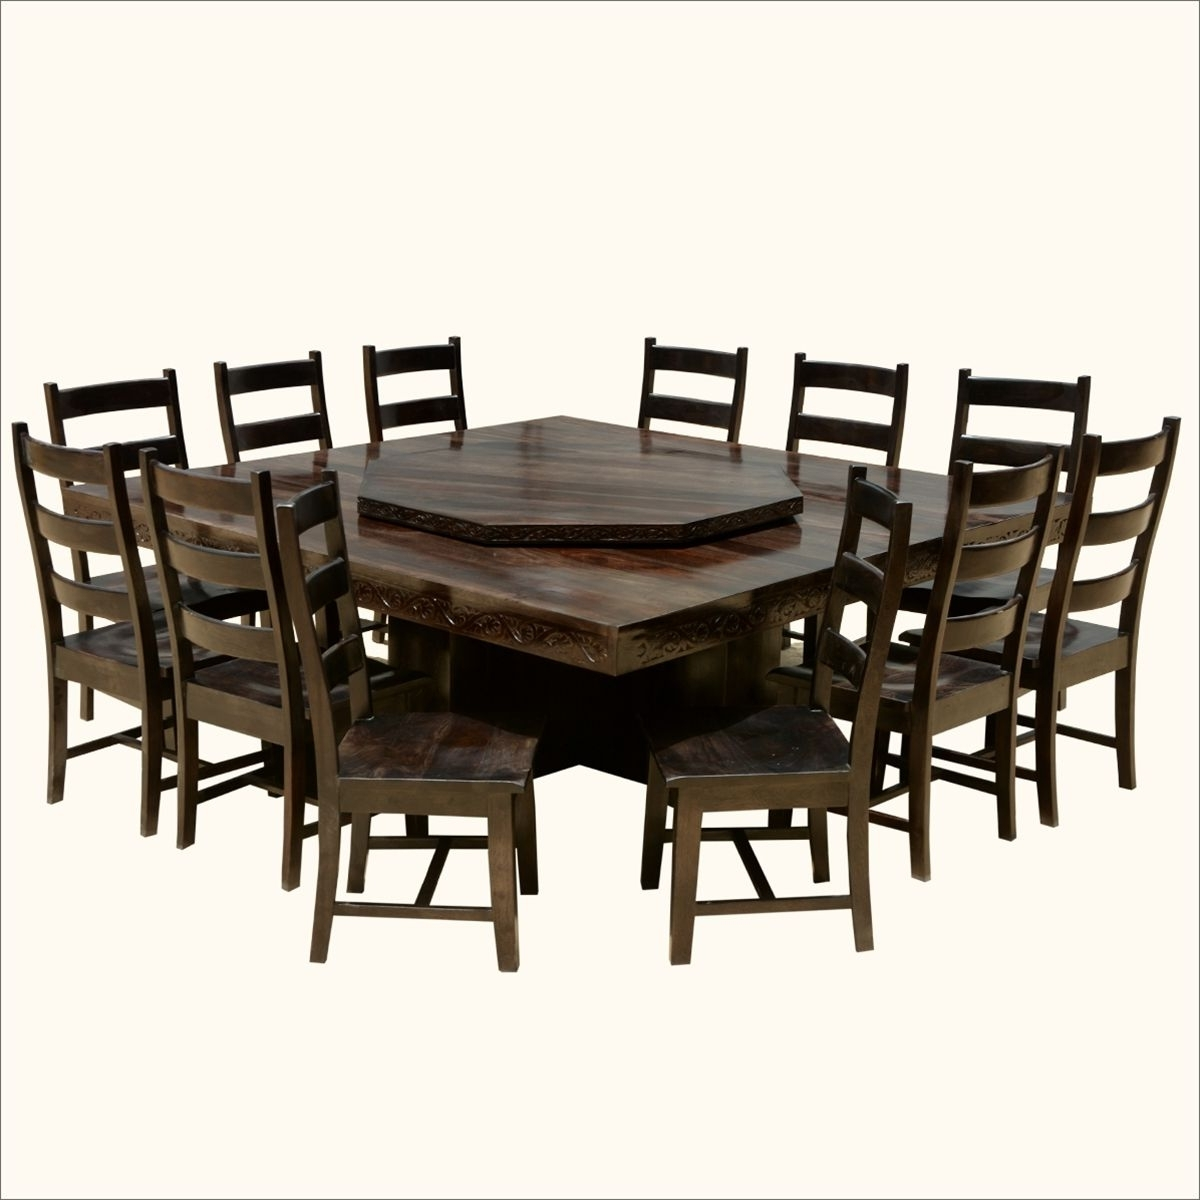 Famous Modern Pioneer Solid Wood Lazy Susan Pedestal Dining Table & Chair In Laurent 7 Piece Rectangle Dining Sets With Wood And Host Chairs (View 18 of 25)